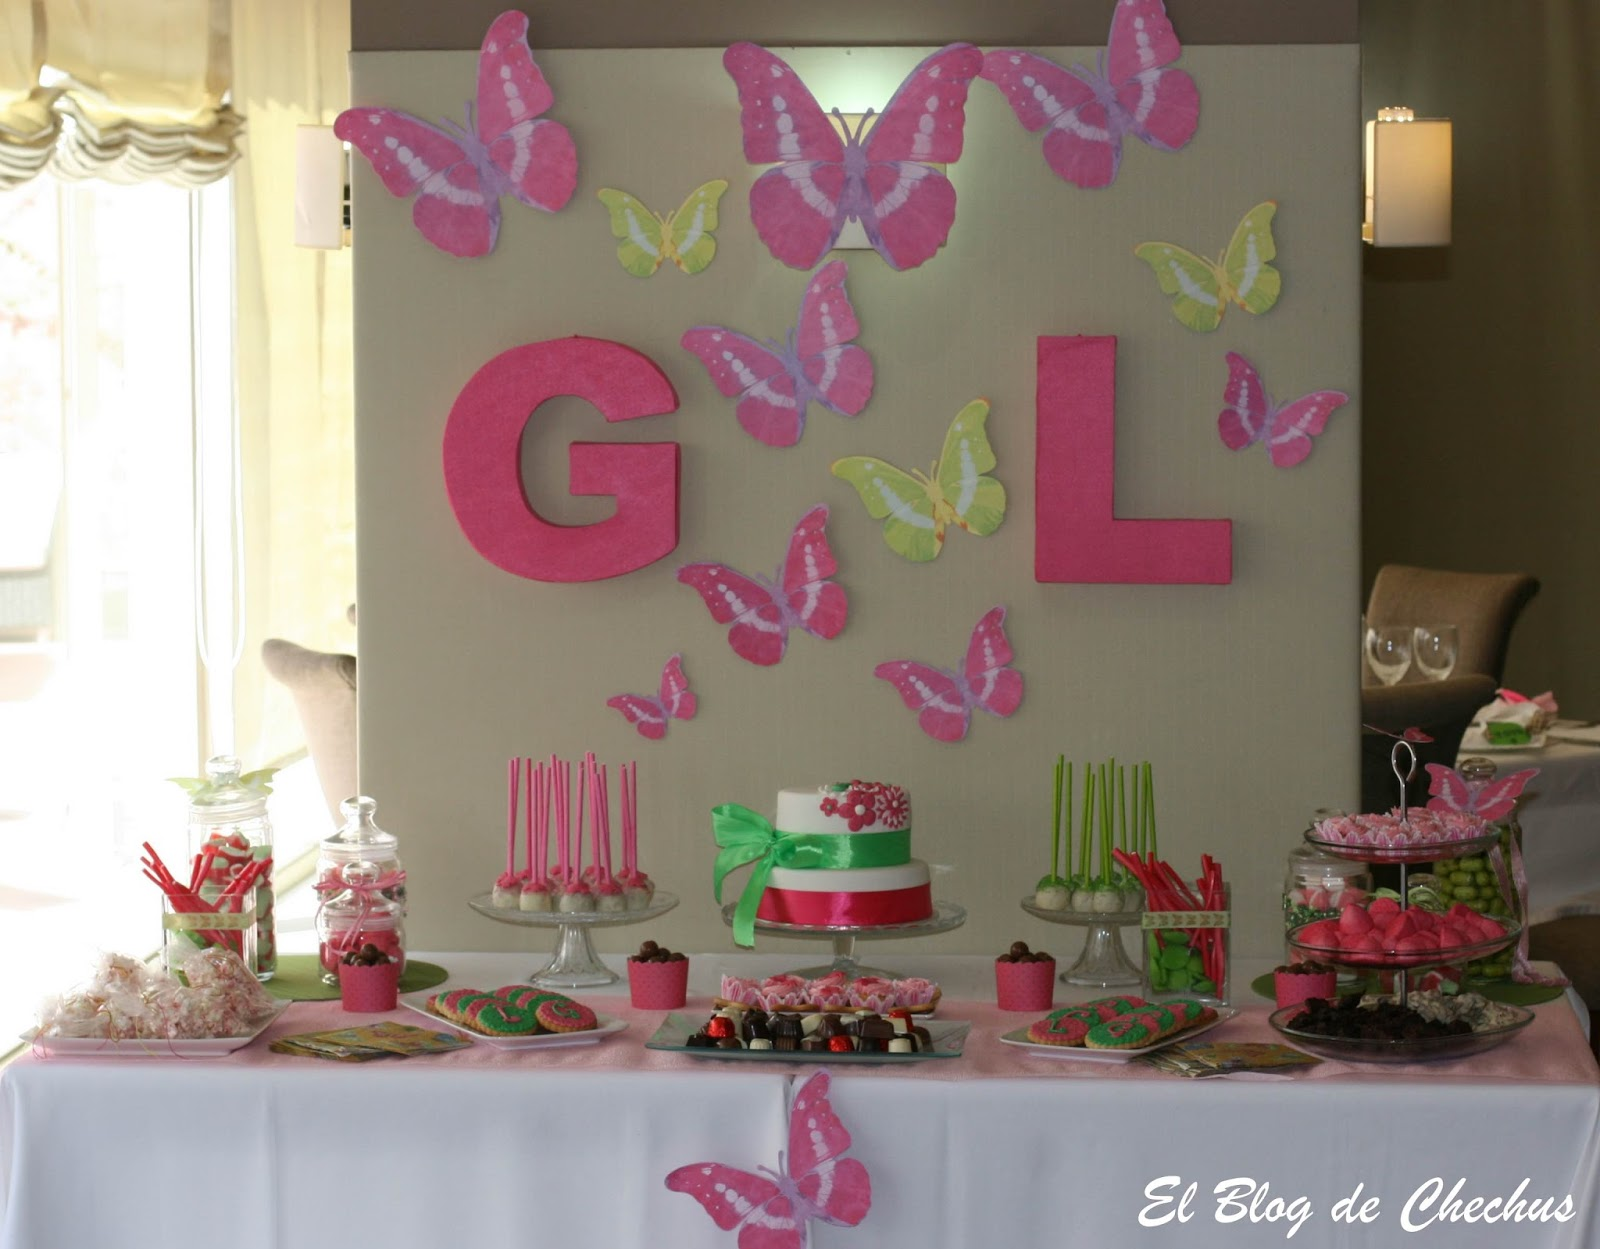 Chechus cupcakes valencia for Decoracion mesas dulces